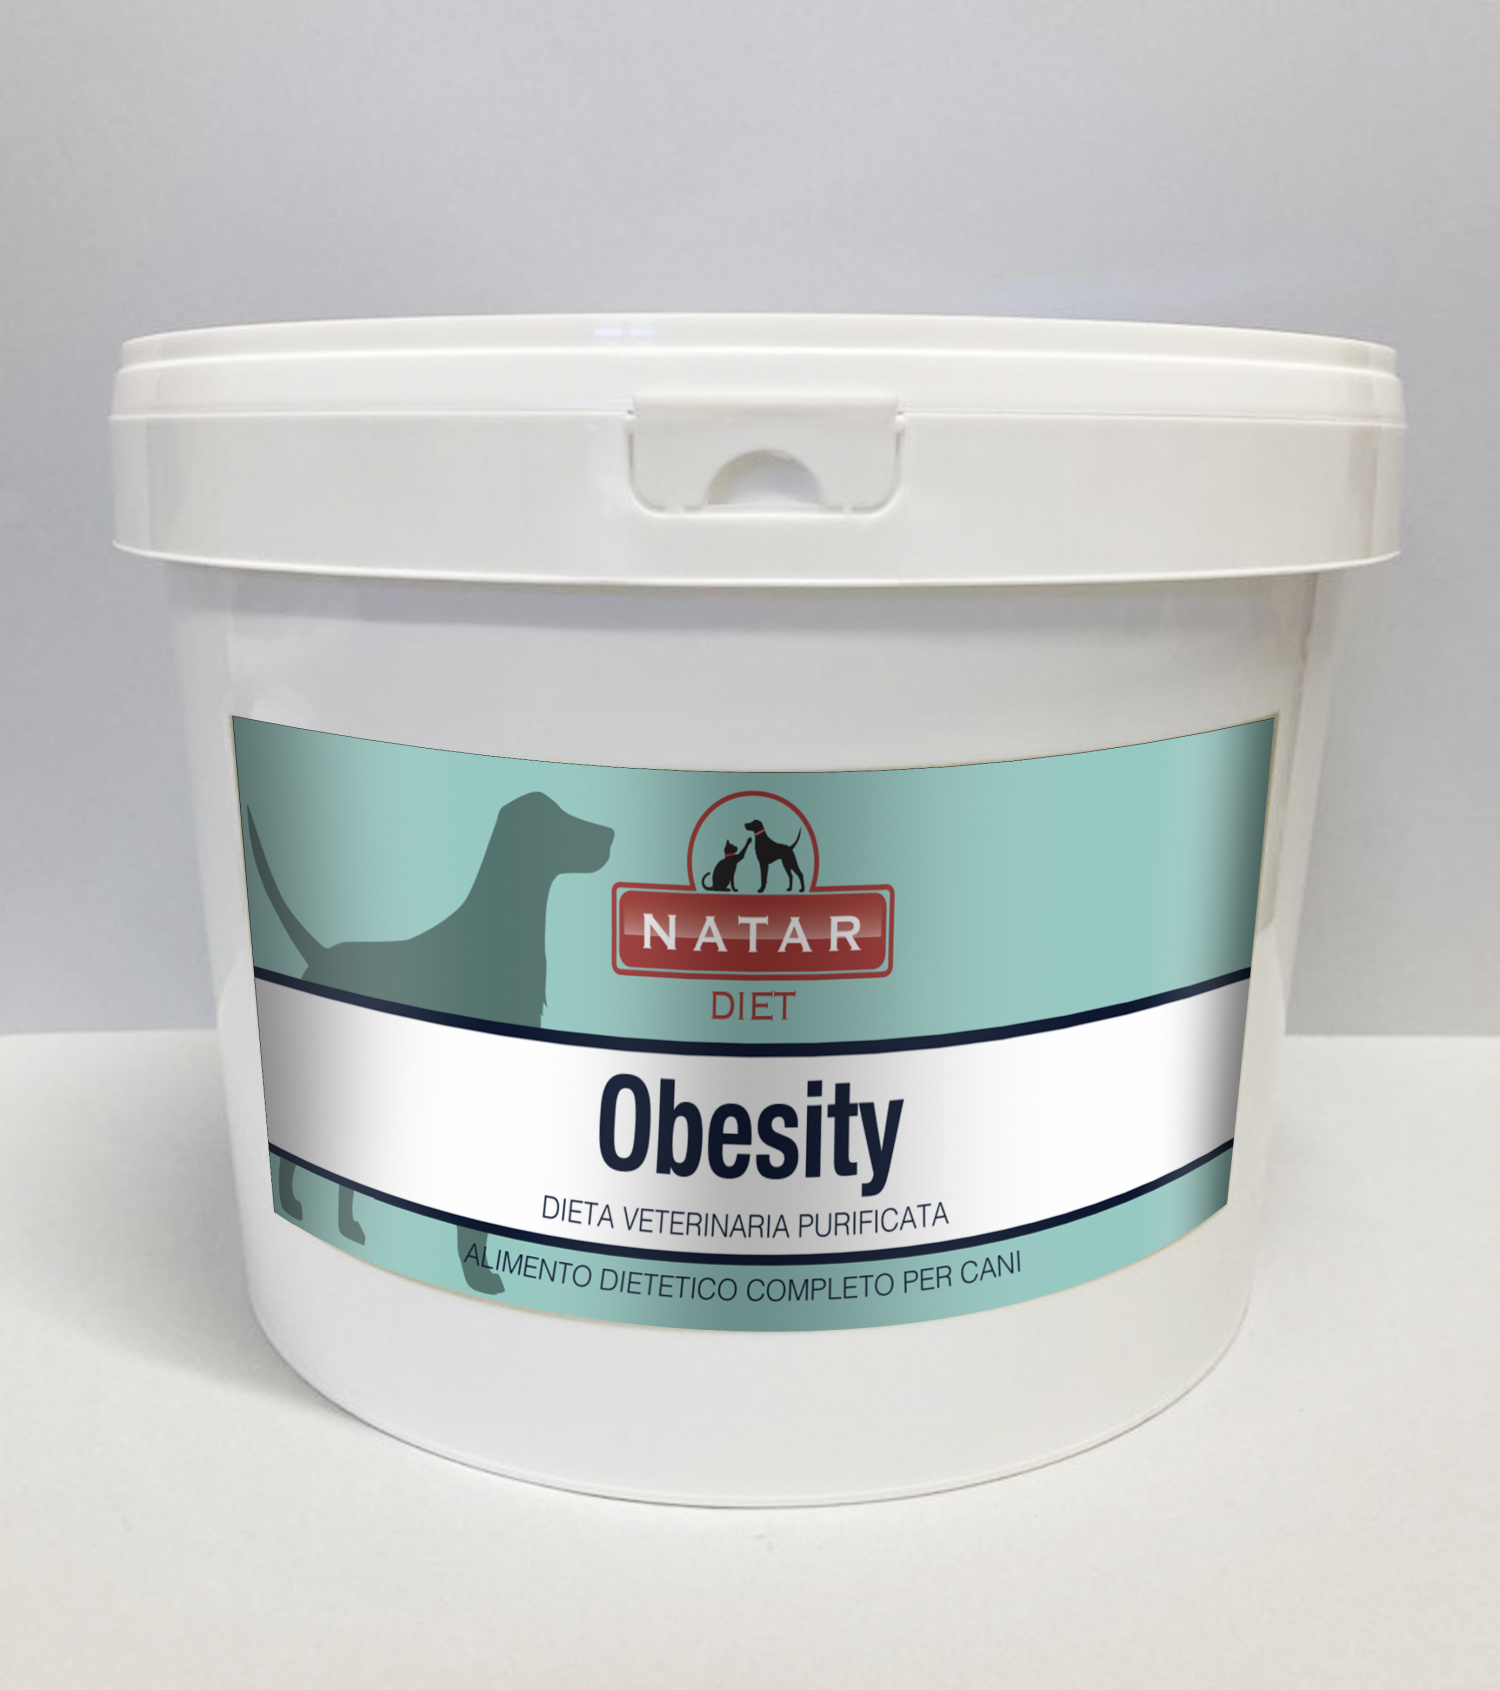 Natar Diet Obesity for dogs